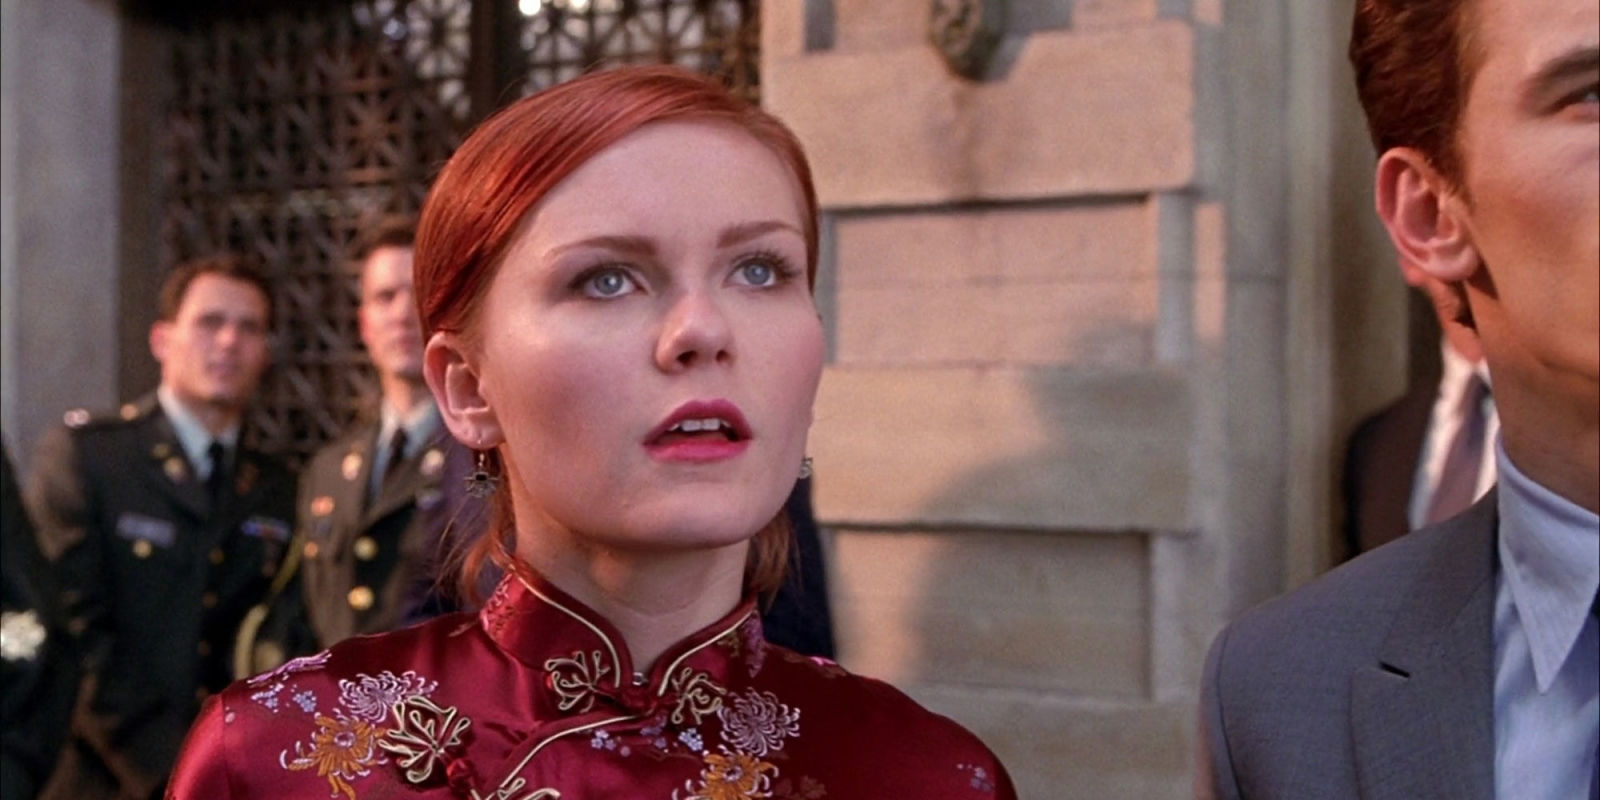 Spider-Man's Kirsten Dunst slates reboots as cash cows